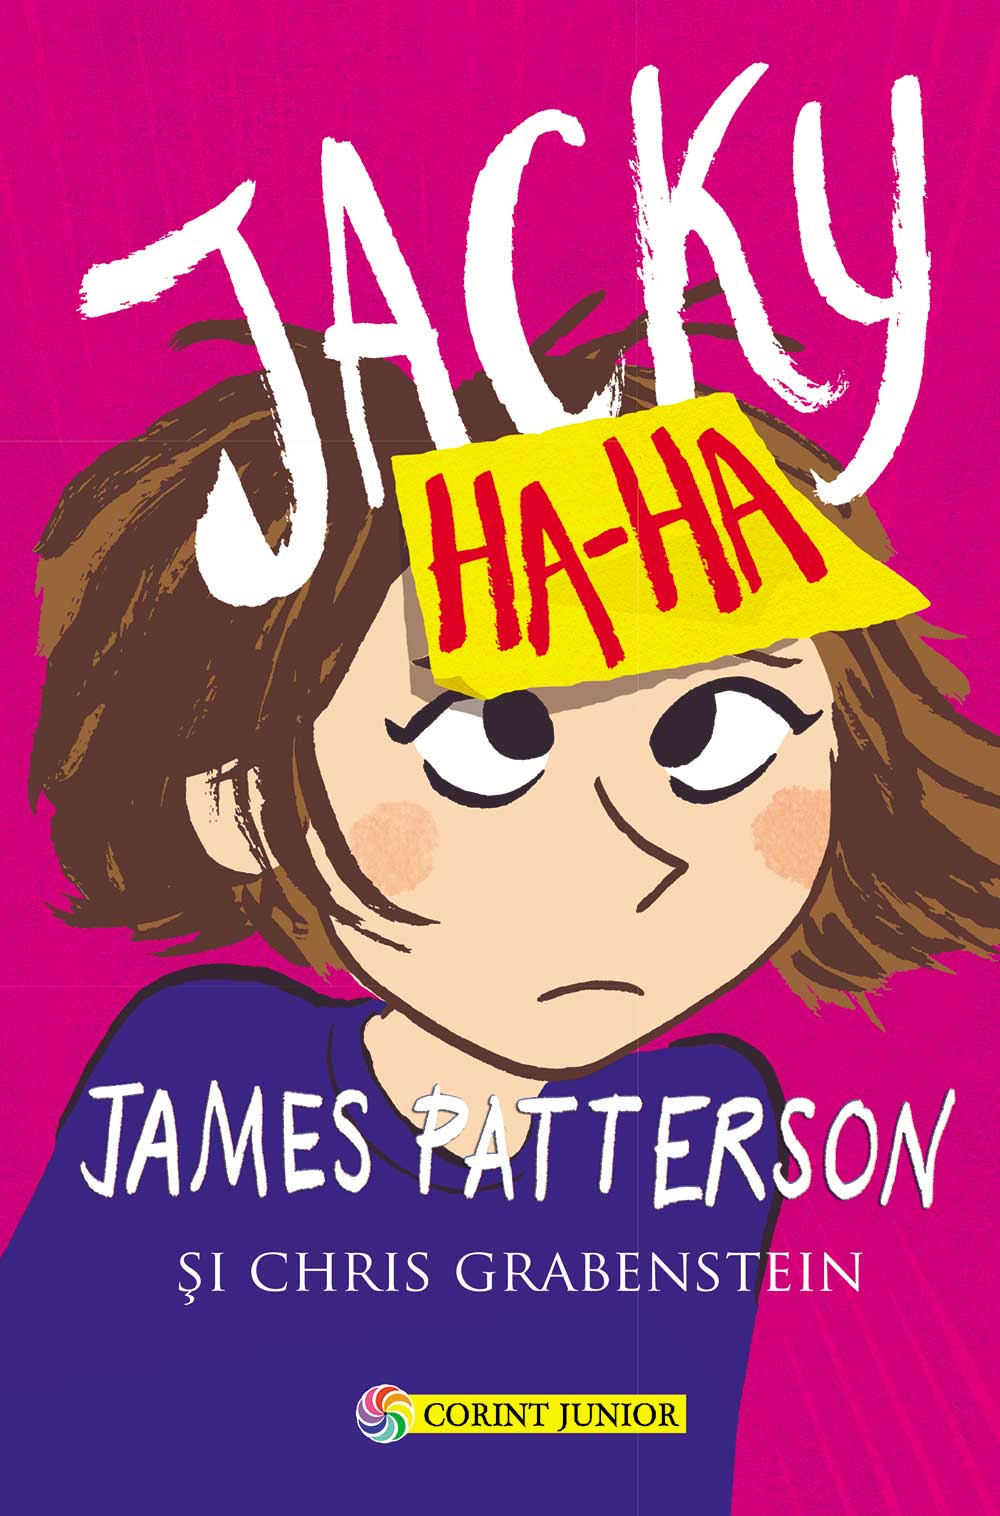 Jacky-Ha-Ha-Patterson-carti-copii-editura-corint-junior